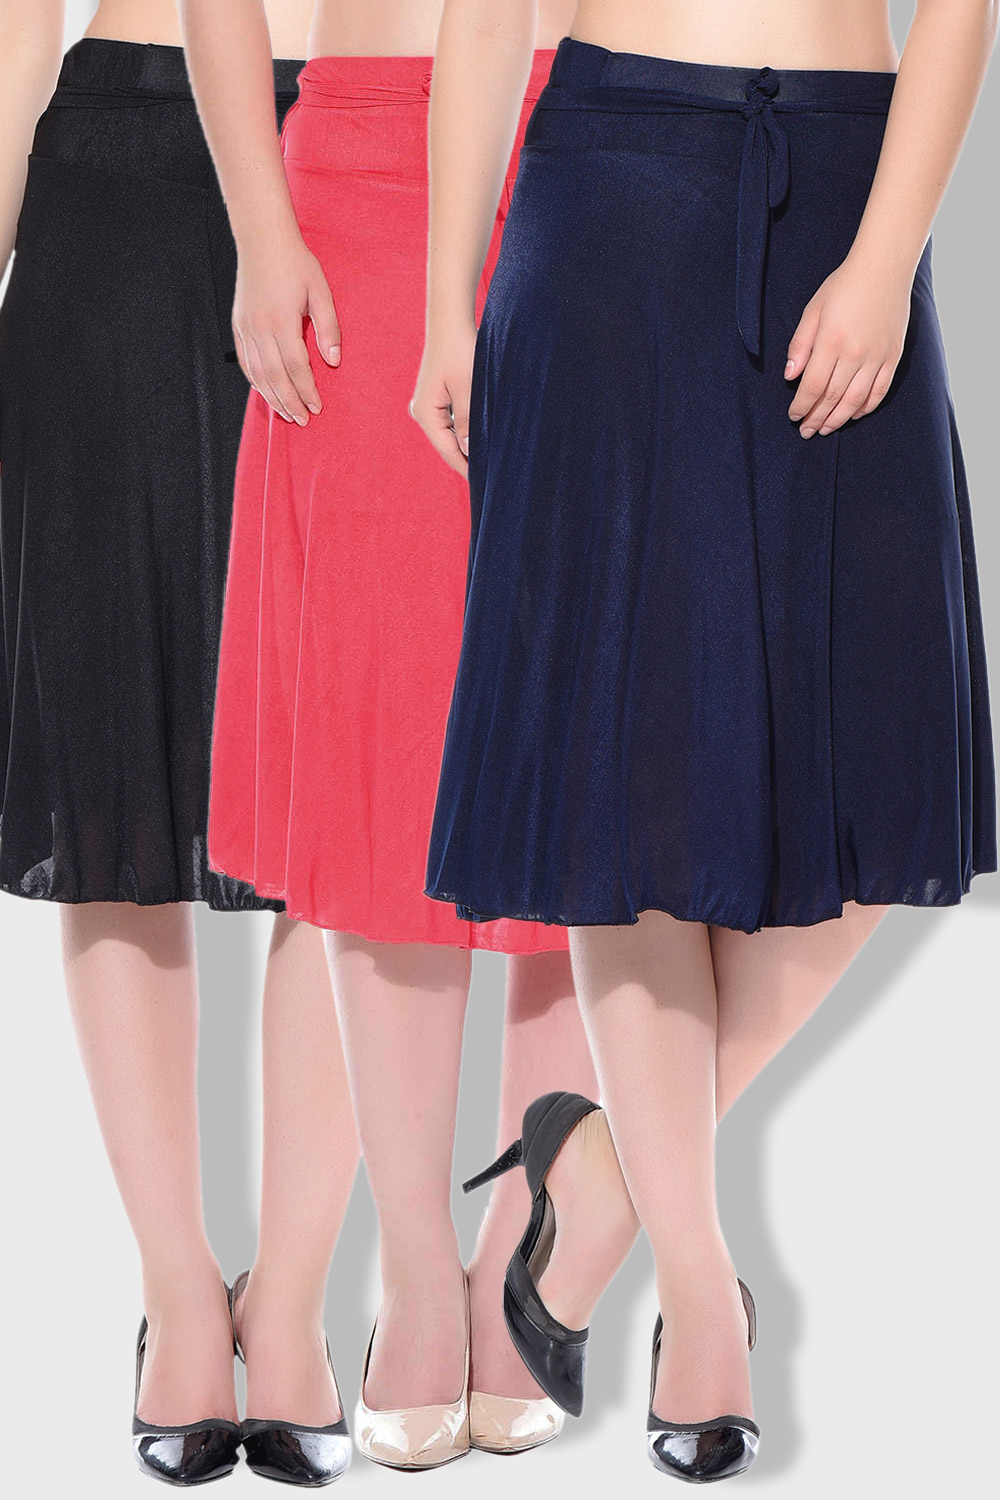 Style Gravity Multi Color Skirt Combo